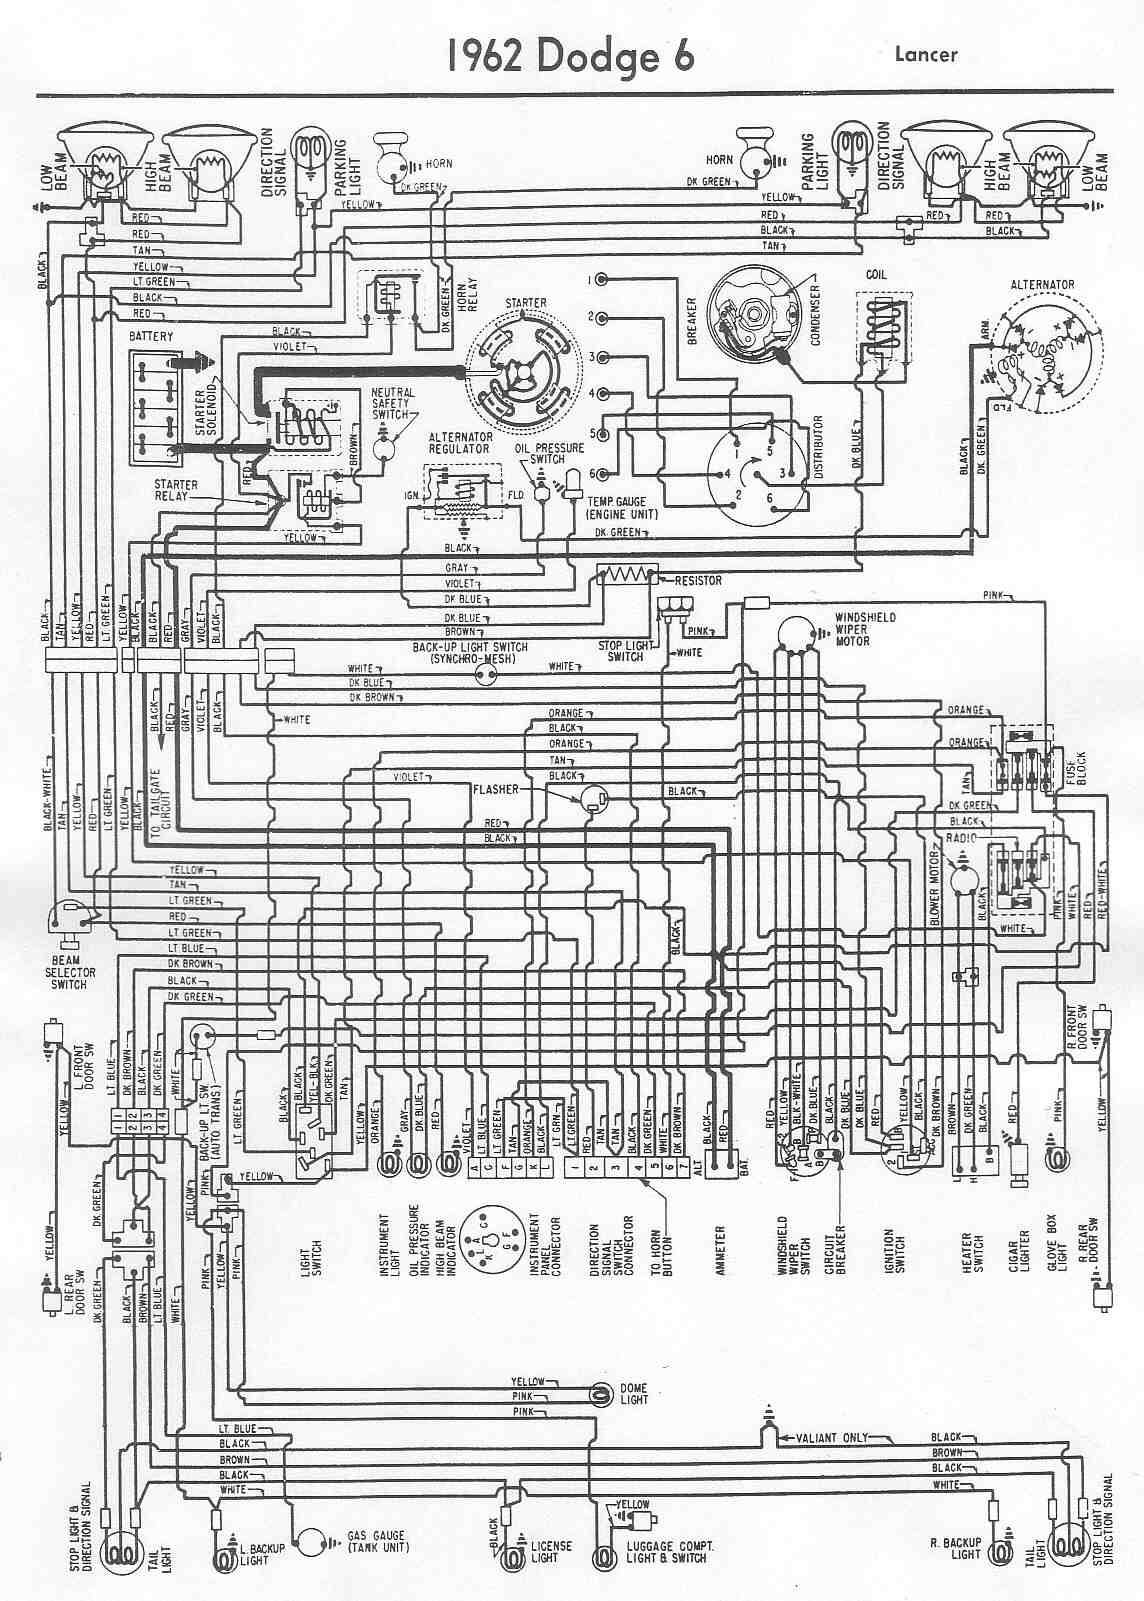 Dodge Viper Wiring Diagram - Wiring Diagram Name on viper wiring charts, pioneer avic-d3 wiring diagram, viper 550 esp wiring-diagram, 1999 subaru forester starter relay wiring diagram, viper 5704v remote start diagram, remote starter installation diagram, viper 5704v wiring-diagram, viper alarm installation diagram, viper 5901 wiring-diagram, keyless car door wiring harness diagram, remote start wiring diagram, in dash dvd player wiring diagram, viper security wiring diagrams, viper 5902 installation diagram, bulldog remote starter wiring diagram, viper door lock wiring guide, dei alarm wiring diagram, dodge caravan wiring diagram, viper satellite relay diagram, viper 5904 installation diagram,